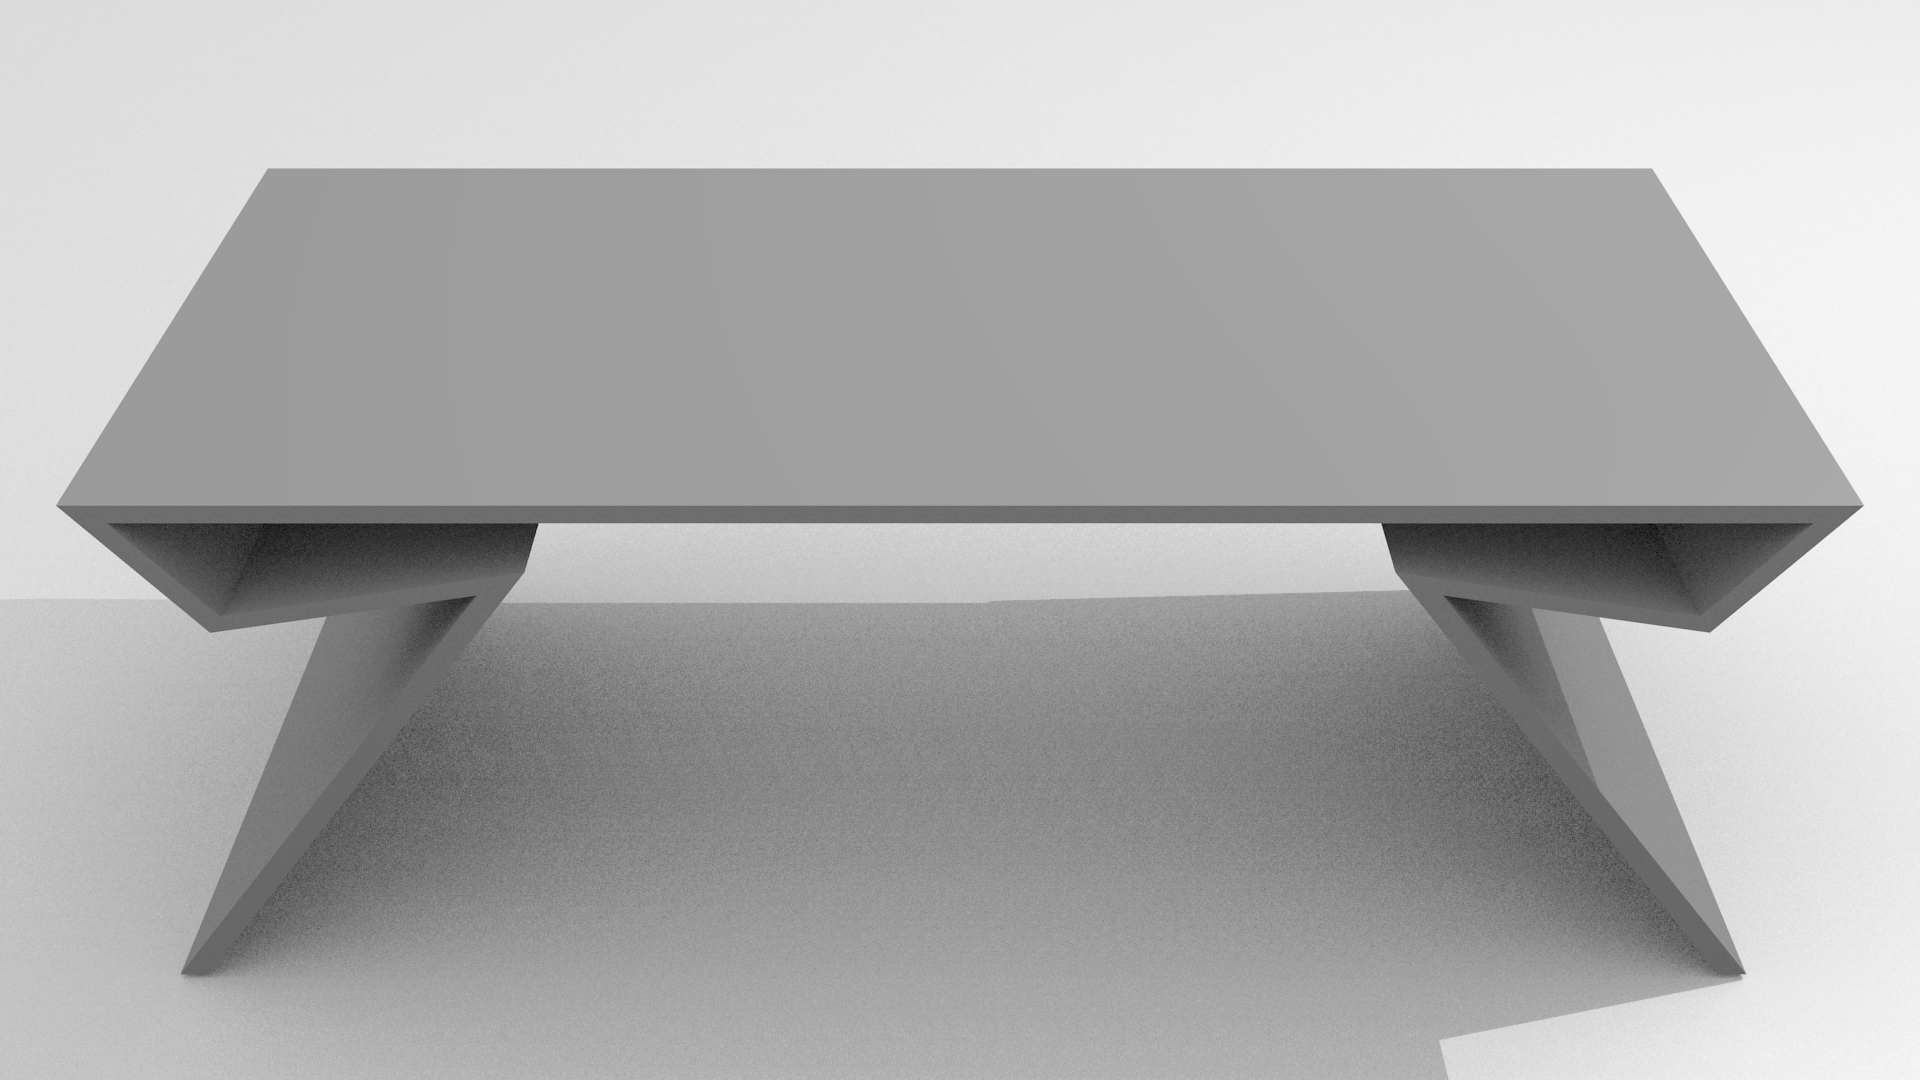 Modern Table Free 3d Model Obj Blend Dae Cgtrader Com